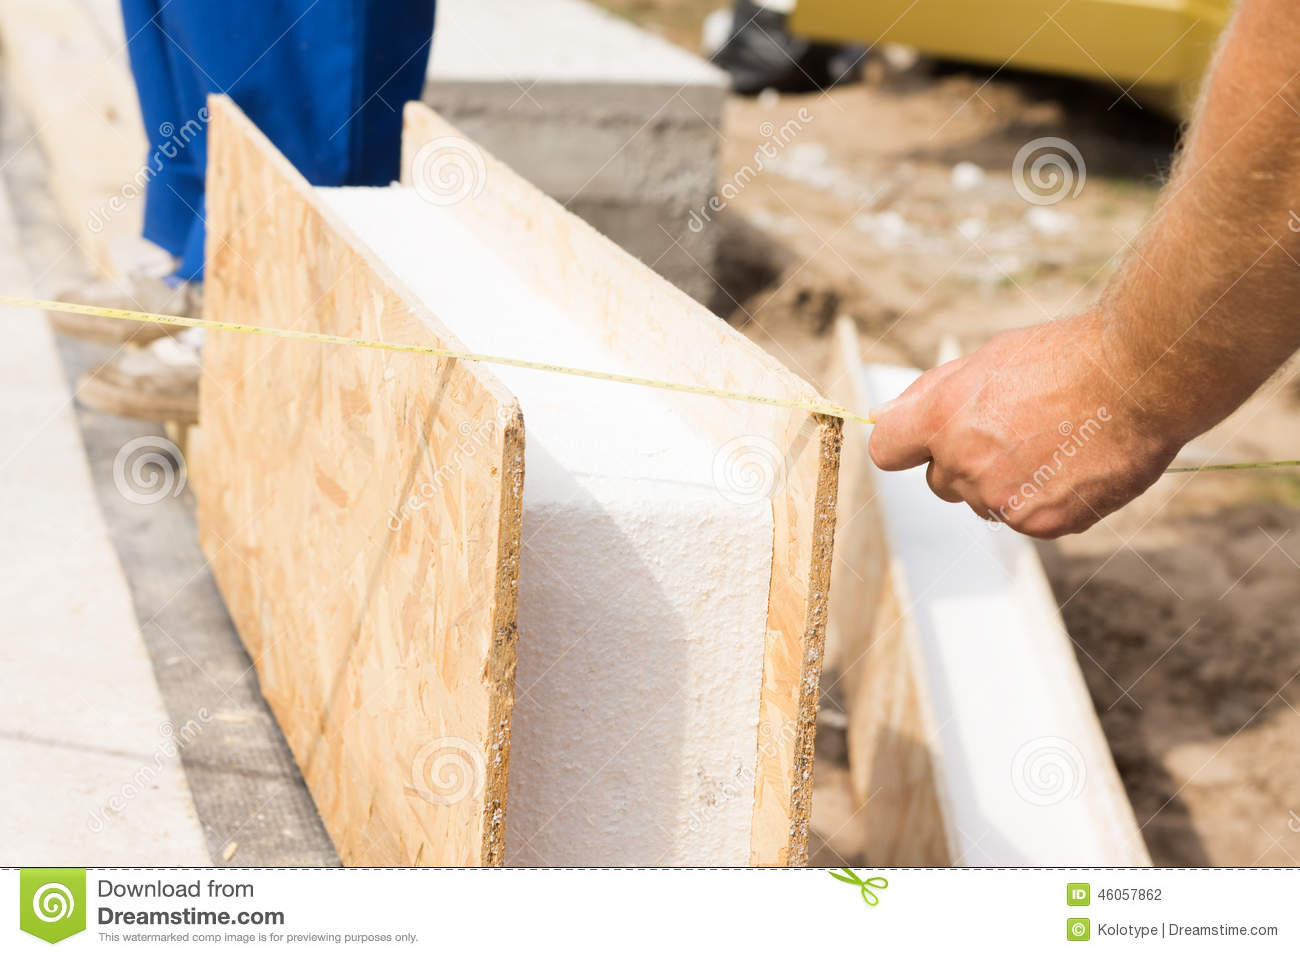 Workman Measuring A Prefab Wall Panel Stock Photo Image Of Foundation Group 46057862